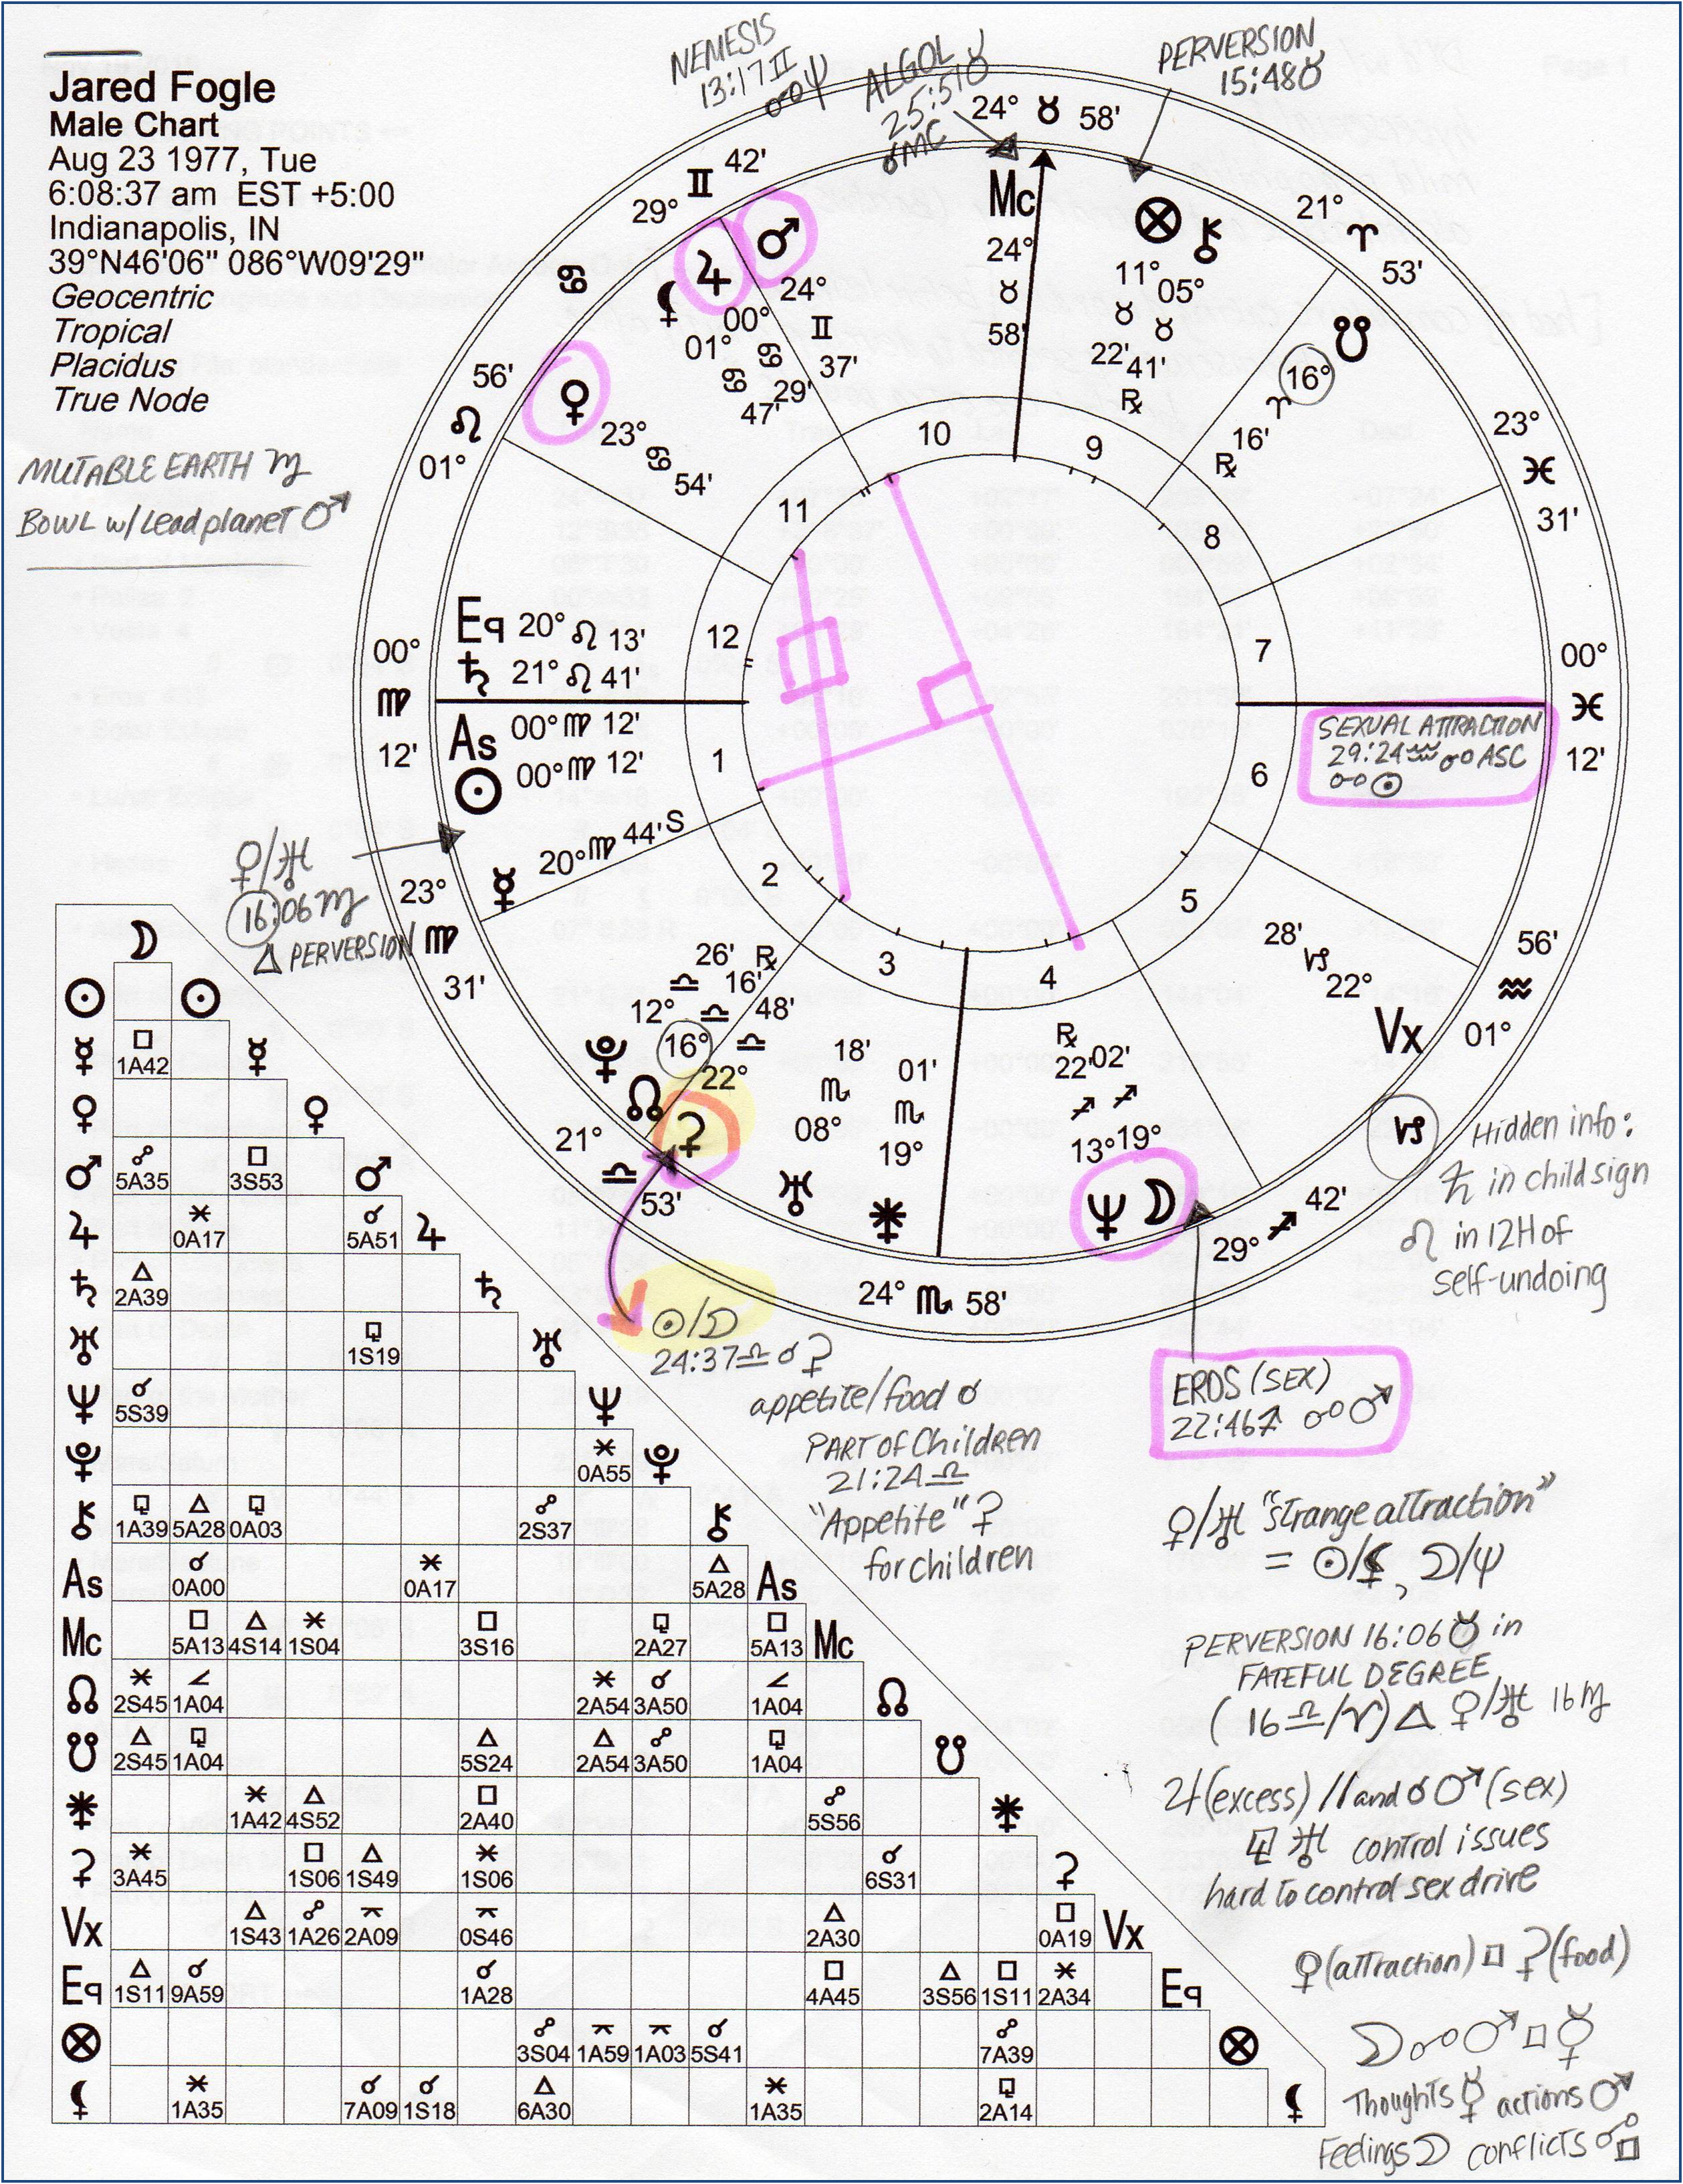 Forensic Astrology Chart Of A Pedophile Living With Cards